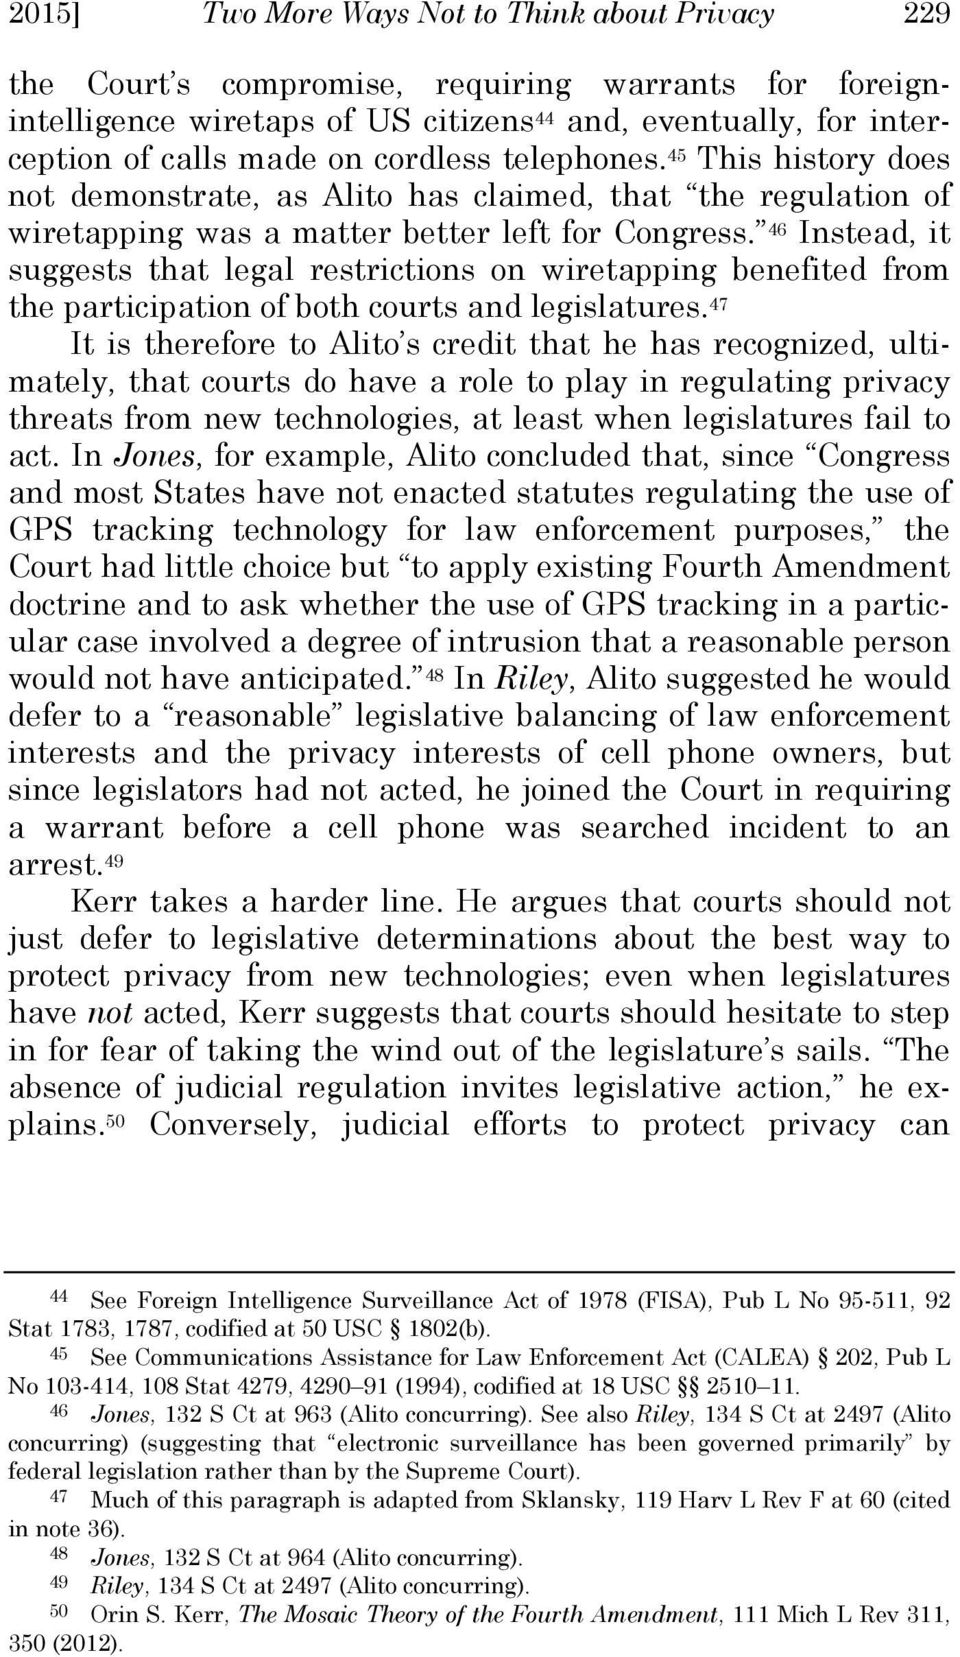 46 Instead, it suggests that legal restrictions on wiretapping benefited from the participation of both courts and legislatures.